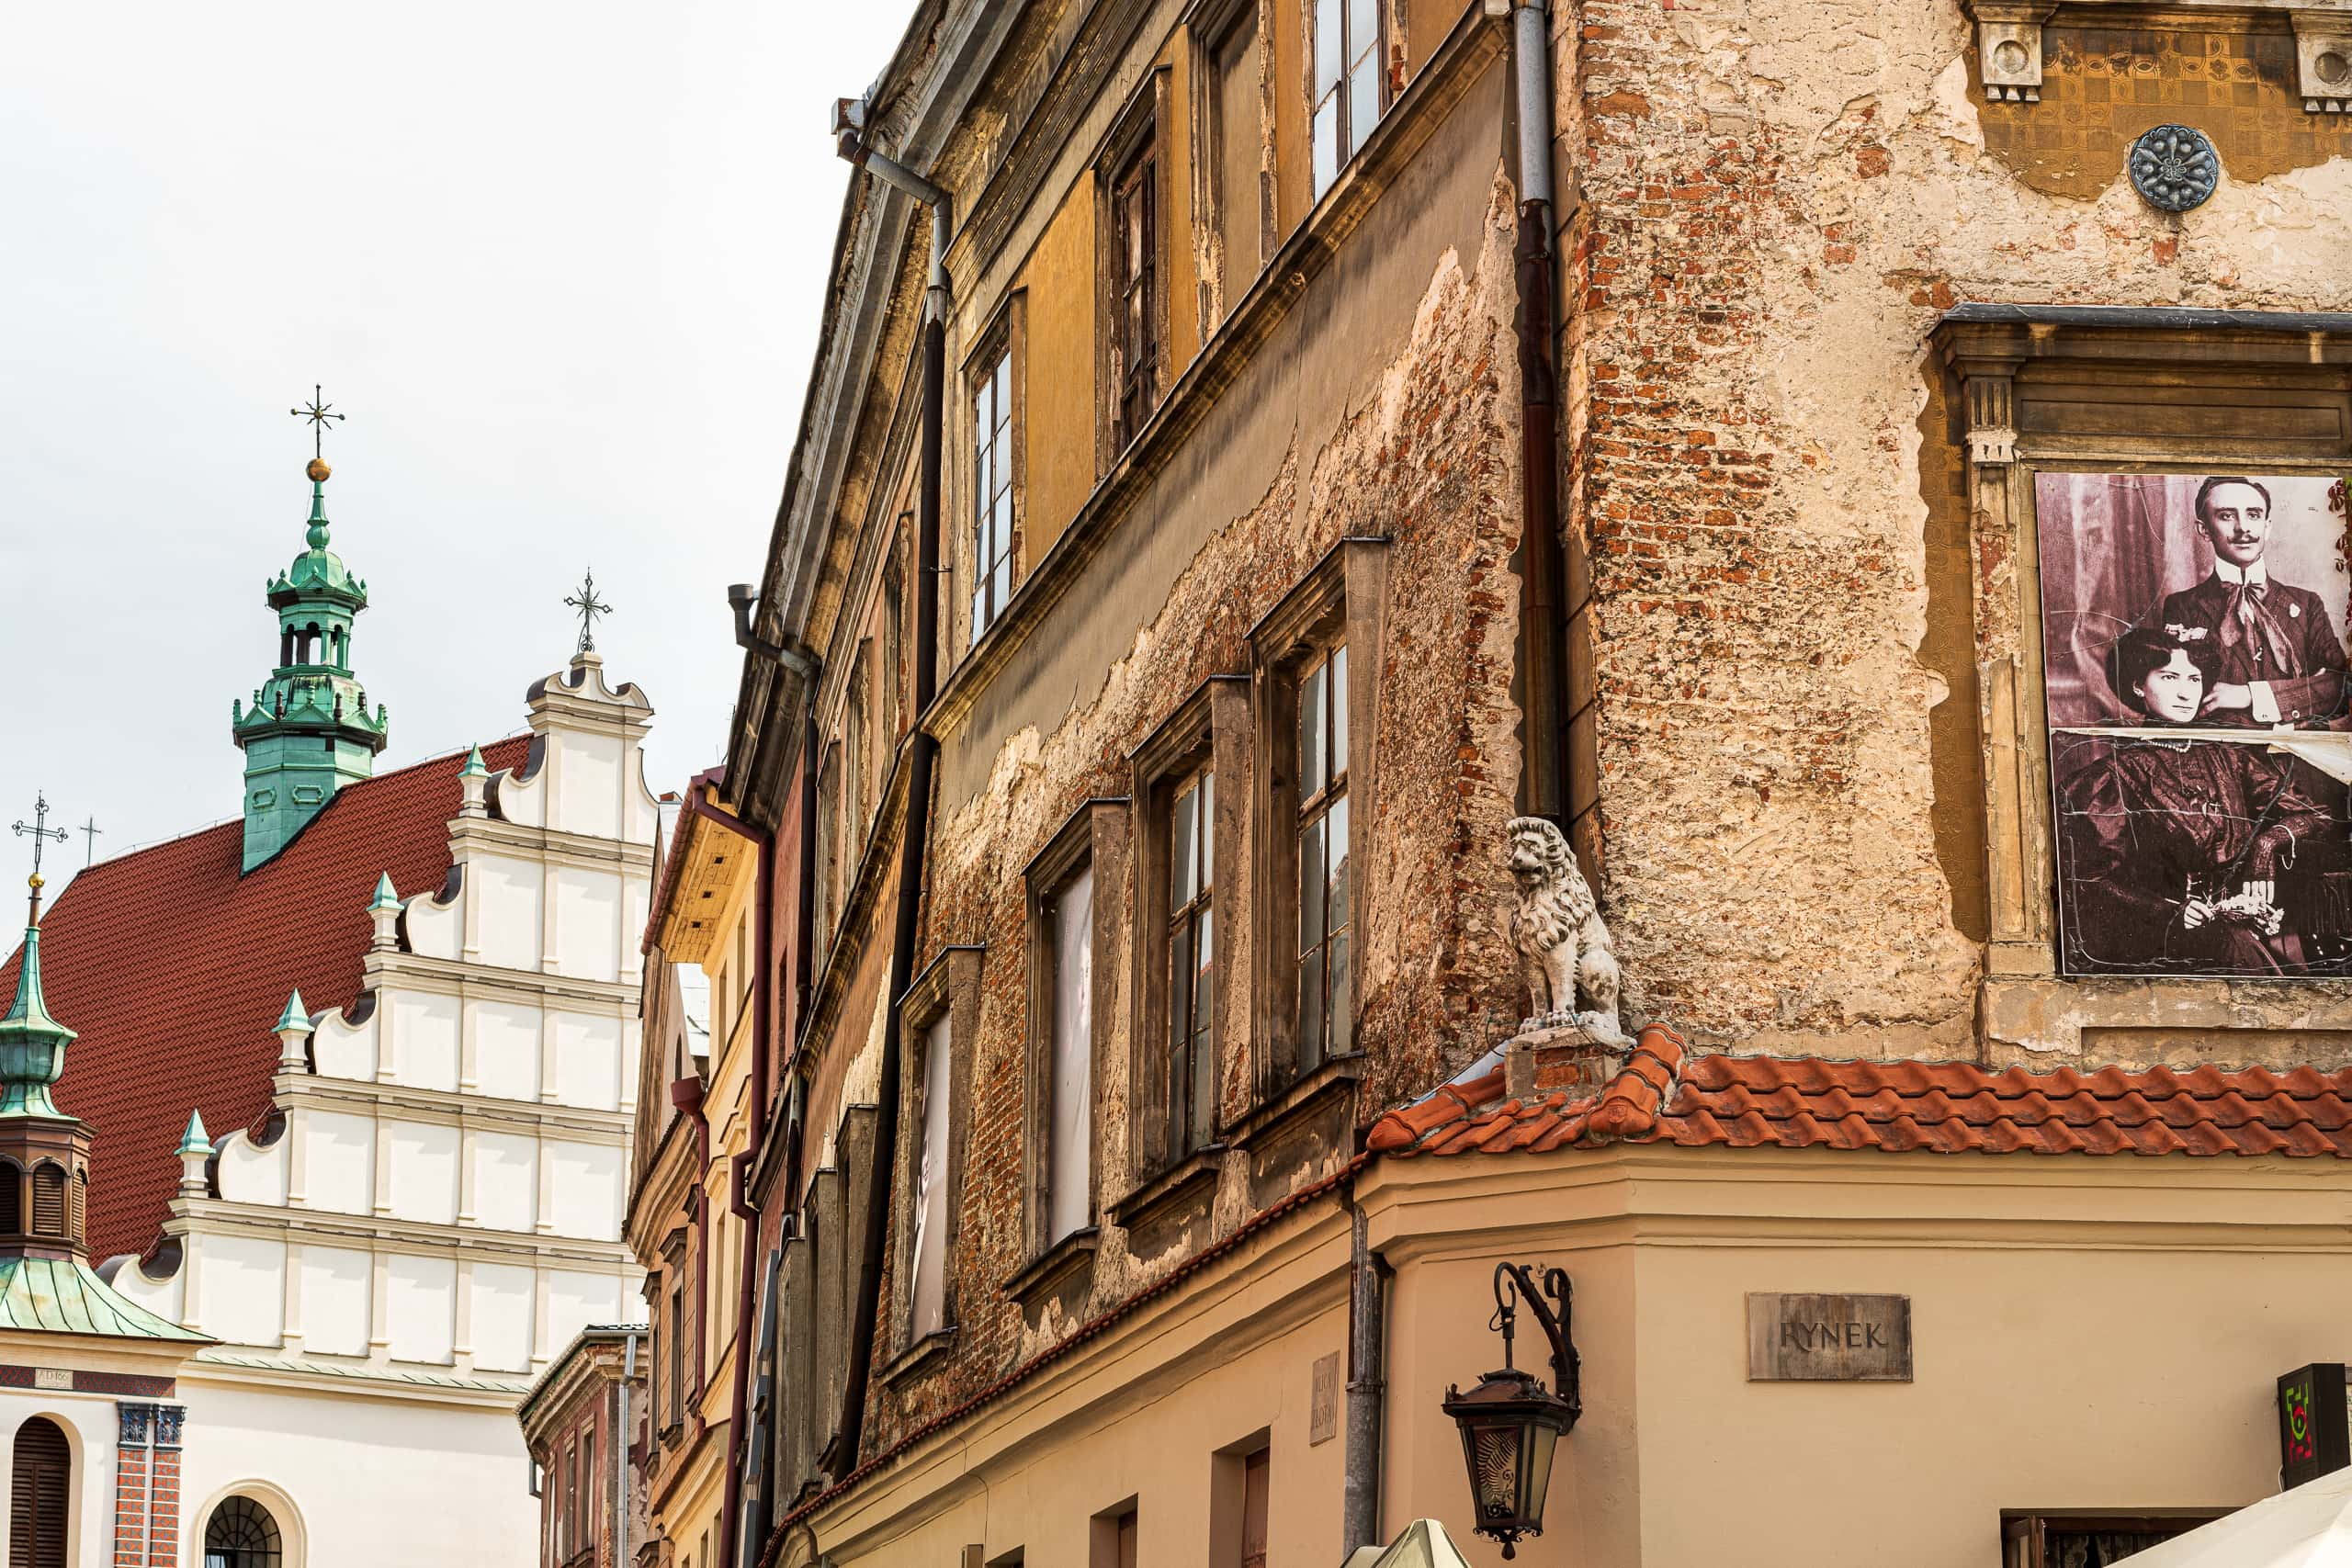 Interesting building decorations in the Old Town | f/8 1/125sec ISO-100 55mm  | ILCE-6500 | 2018-09-08 11:14:21